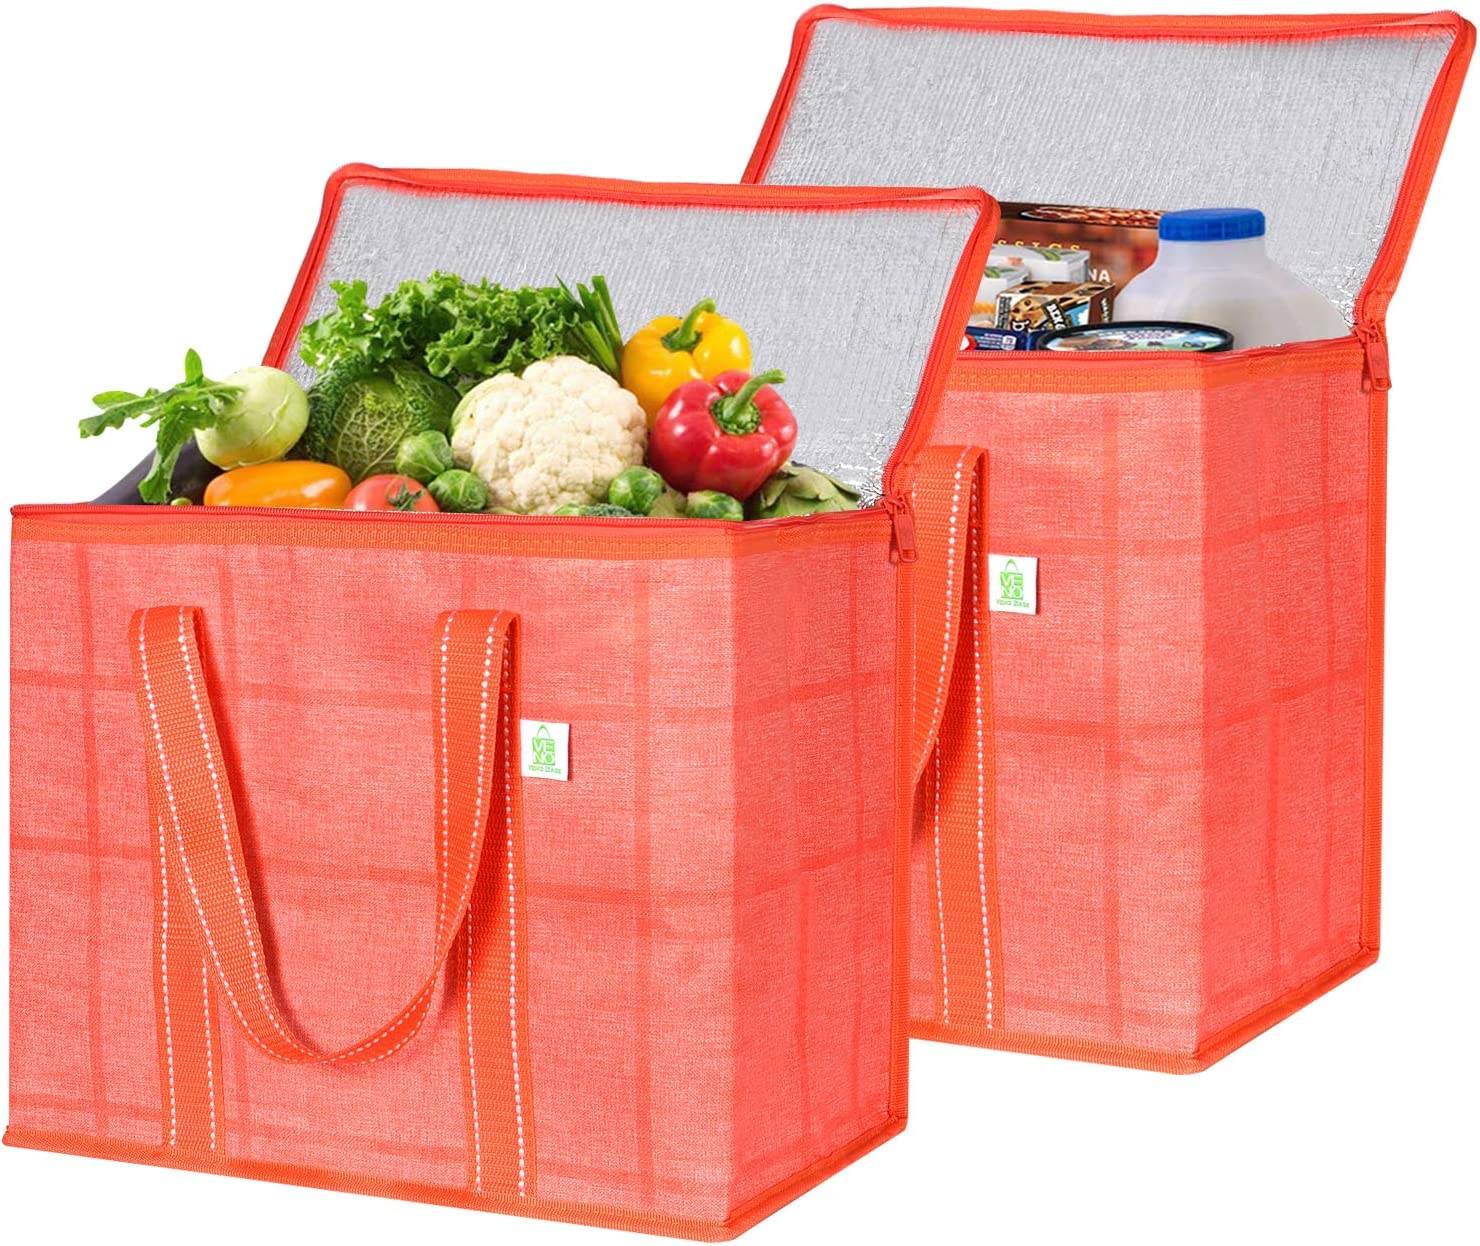 2 Pack Insulated Reusable Grocery Bag With Cardboard Bottom by VENO, Durable, Heavy Duty, Large Size, Stands Upright, Collapsible, Sturdy Zipper, Recycled Material, Eco-Friendly (Orangered/Windowpane)